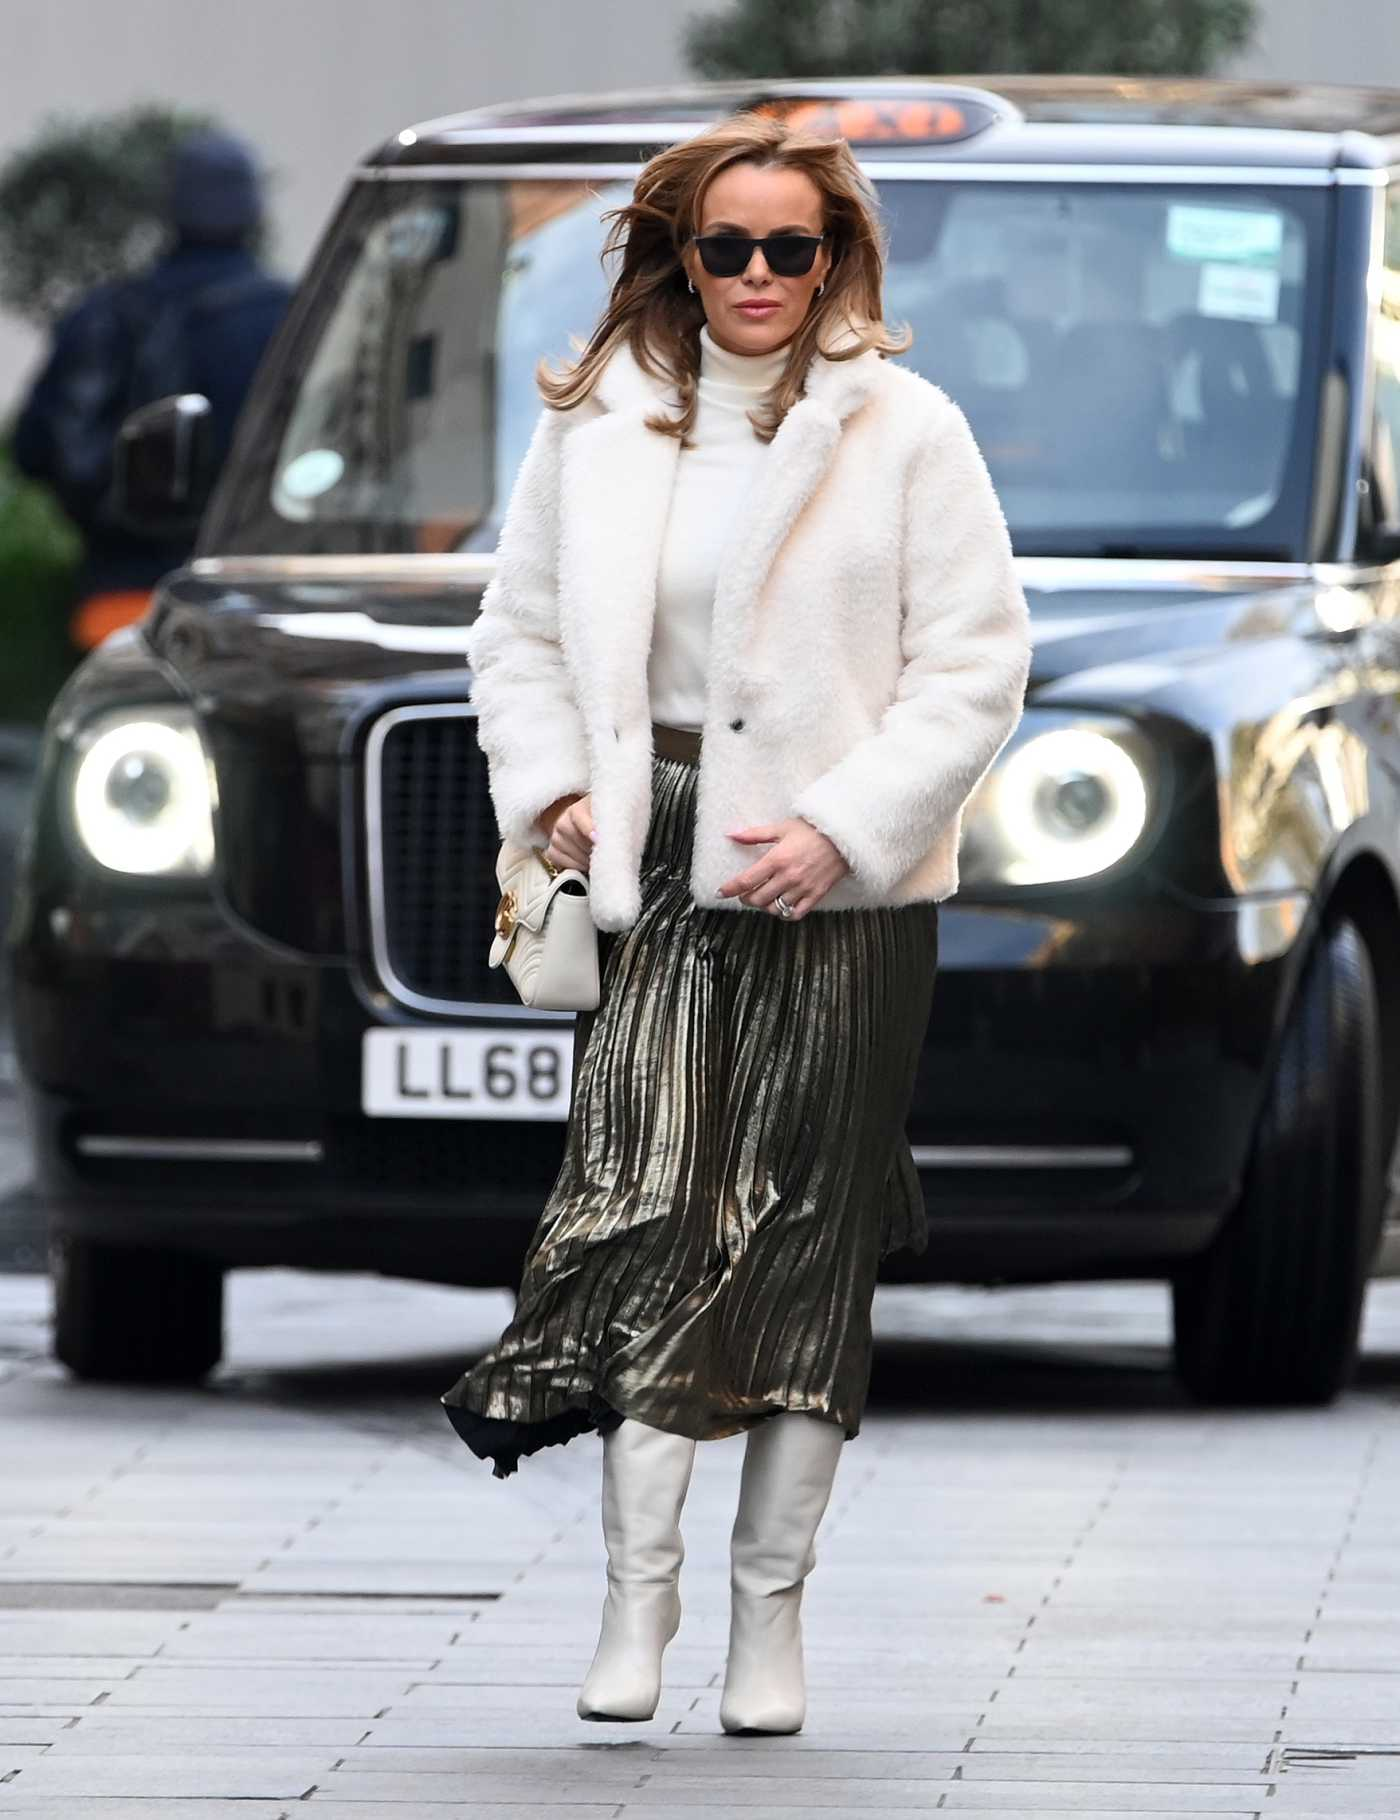 Amanda Holden in a Short White Fur Coat Arrives at the Global Radio Studios in London 12/16/2020